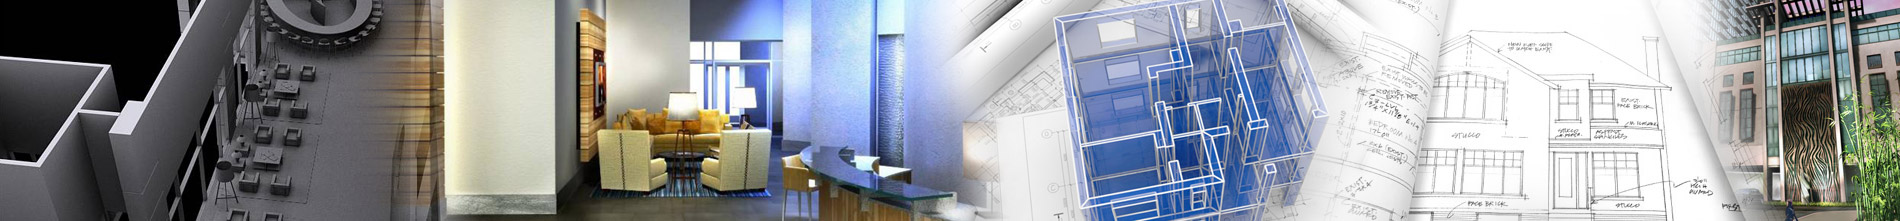 Design solutions for the Architectural, Engineering and Construction (A/E/C) industry